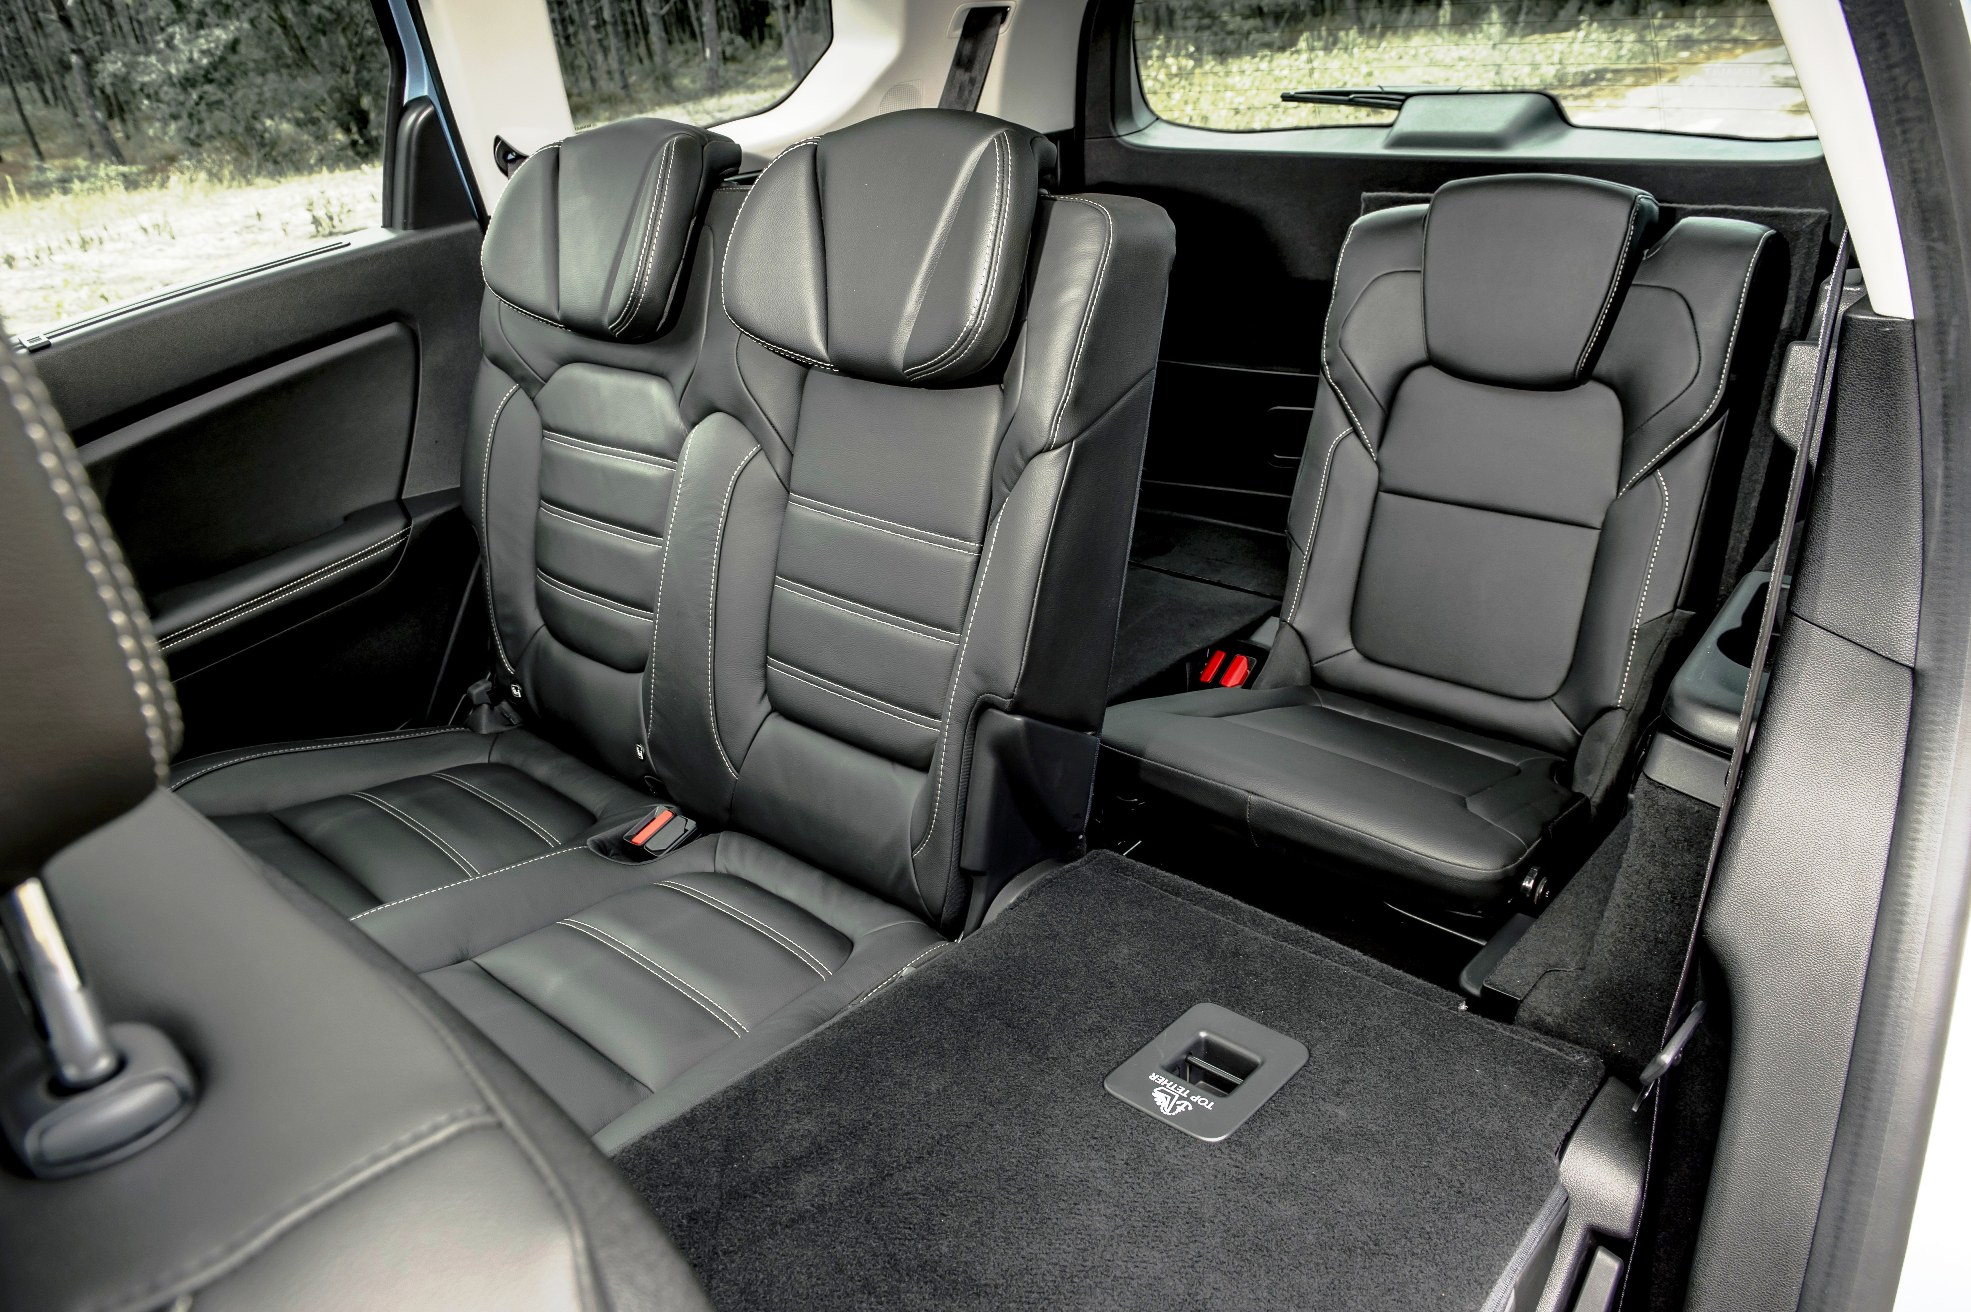 renault grand scenic seven seater mpv road test wheels alive. Black Bedroom Furniture Sets. Home Design Ideas